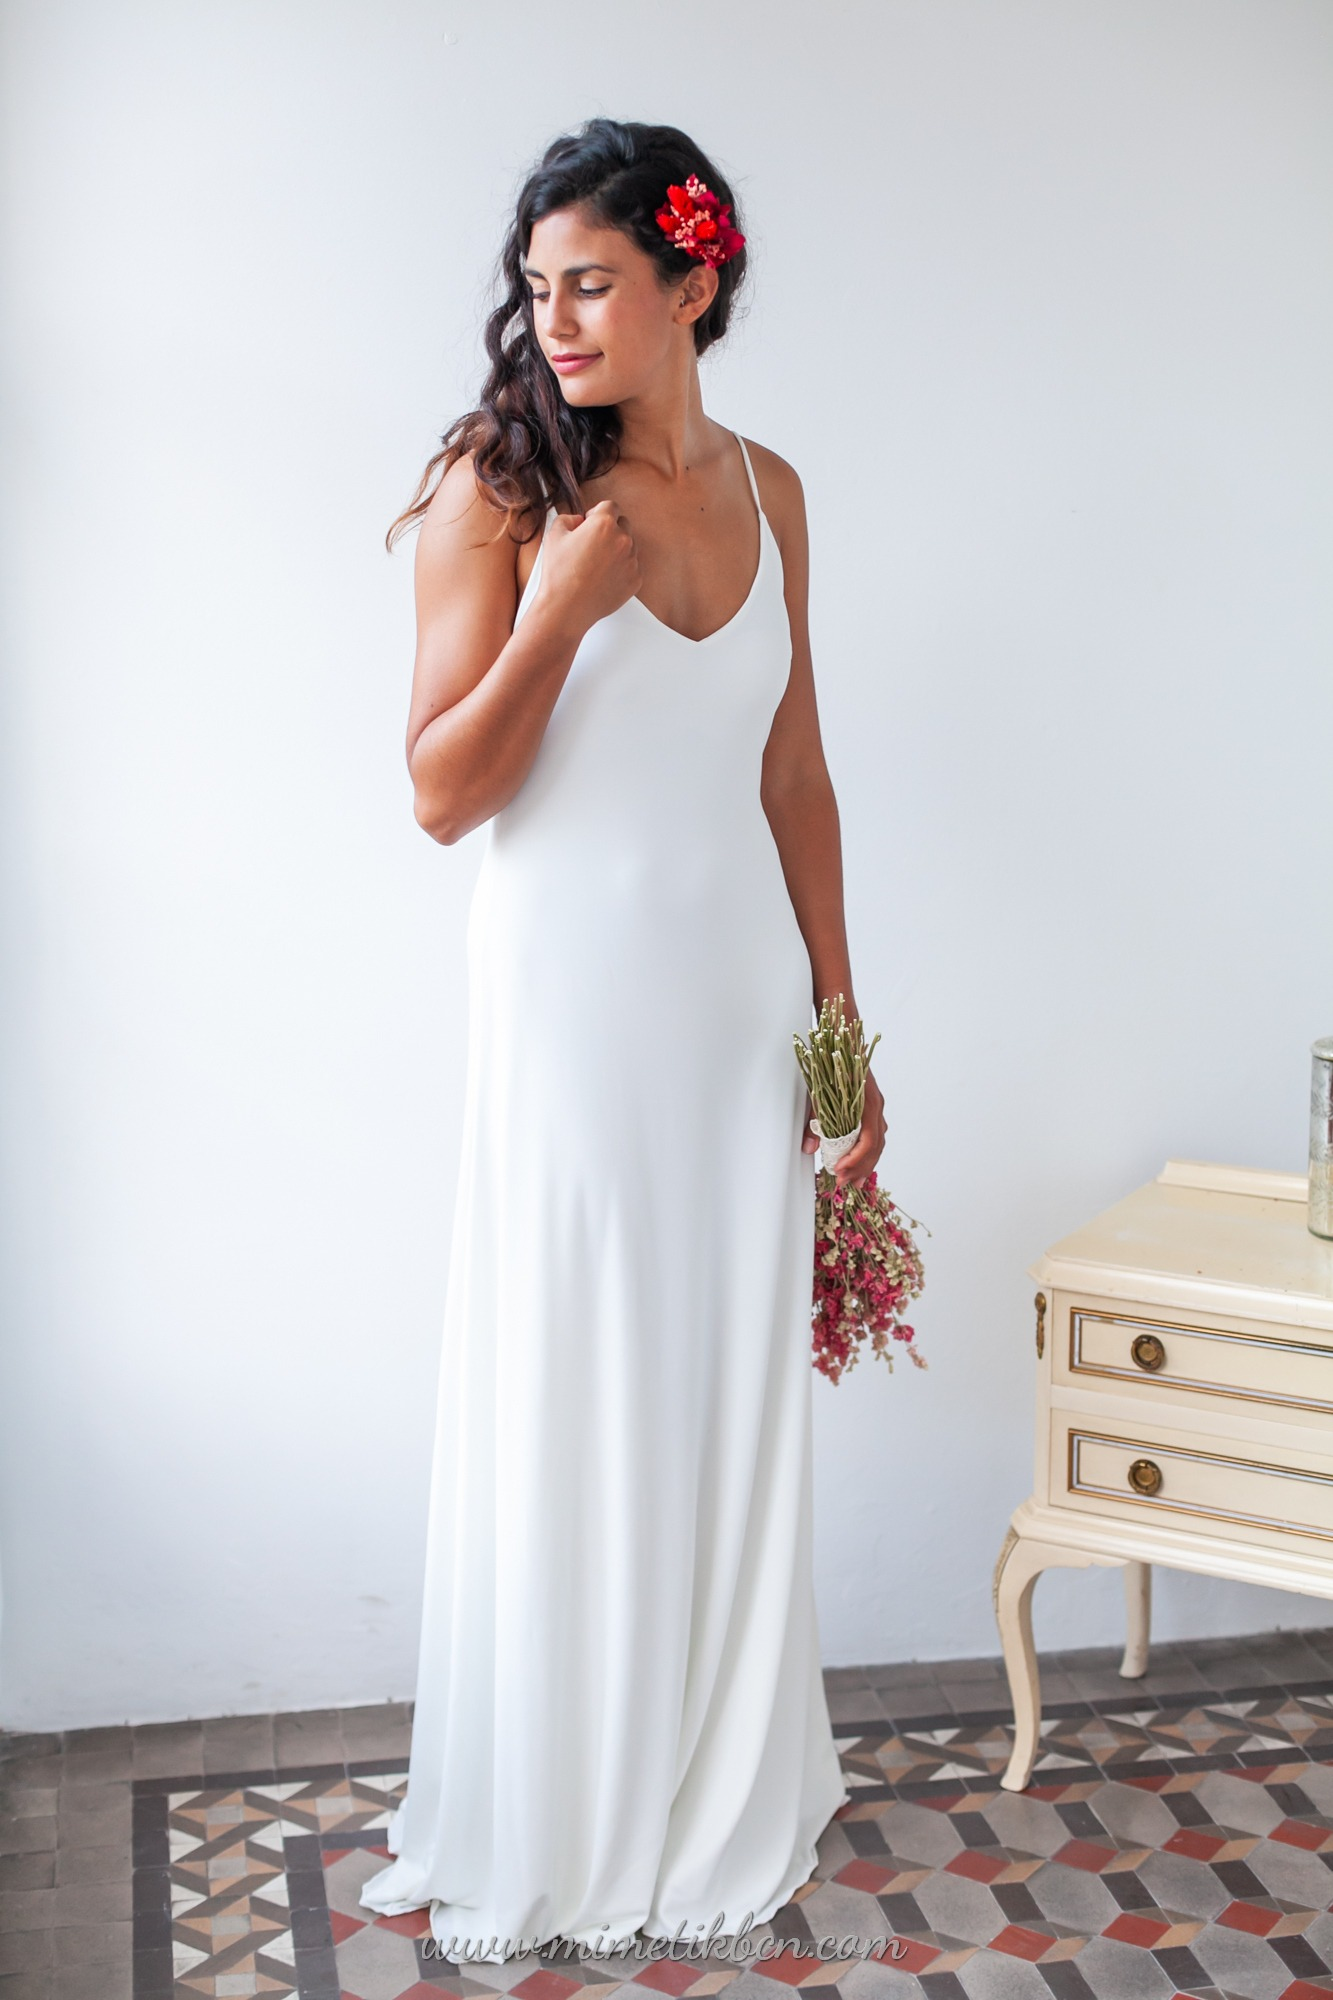 Simple yet elegant wedding dress for small wedding